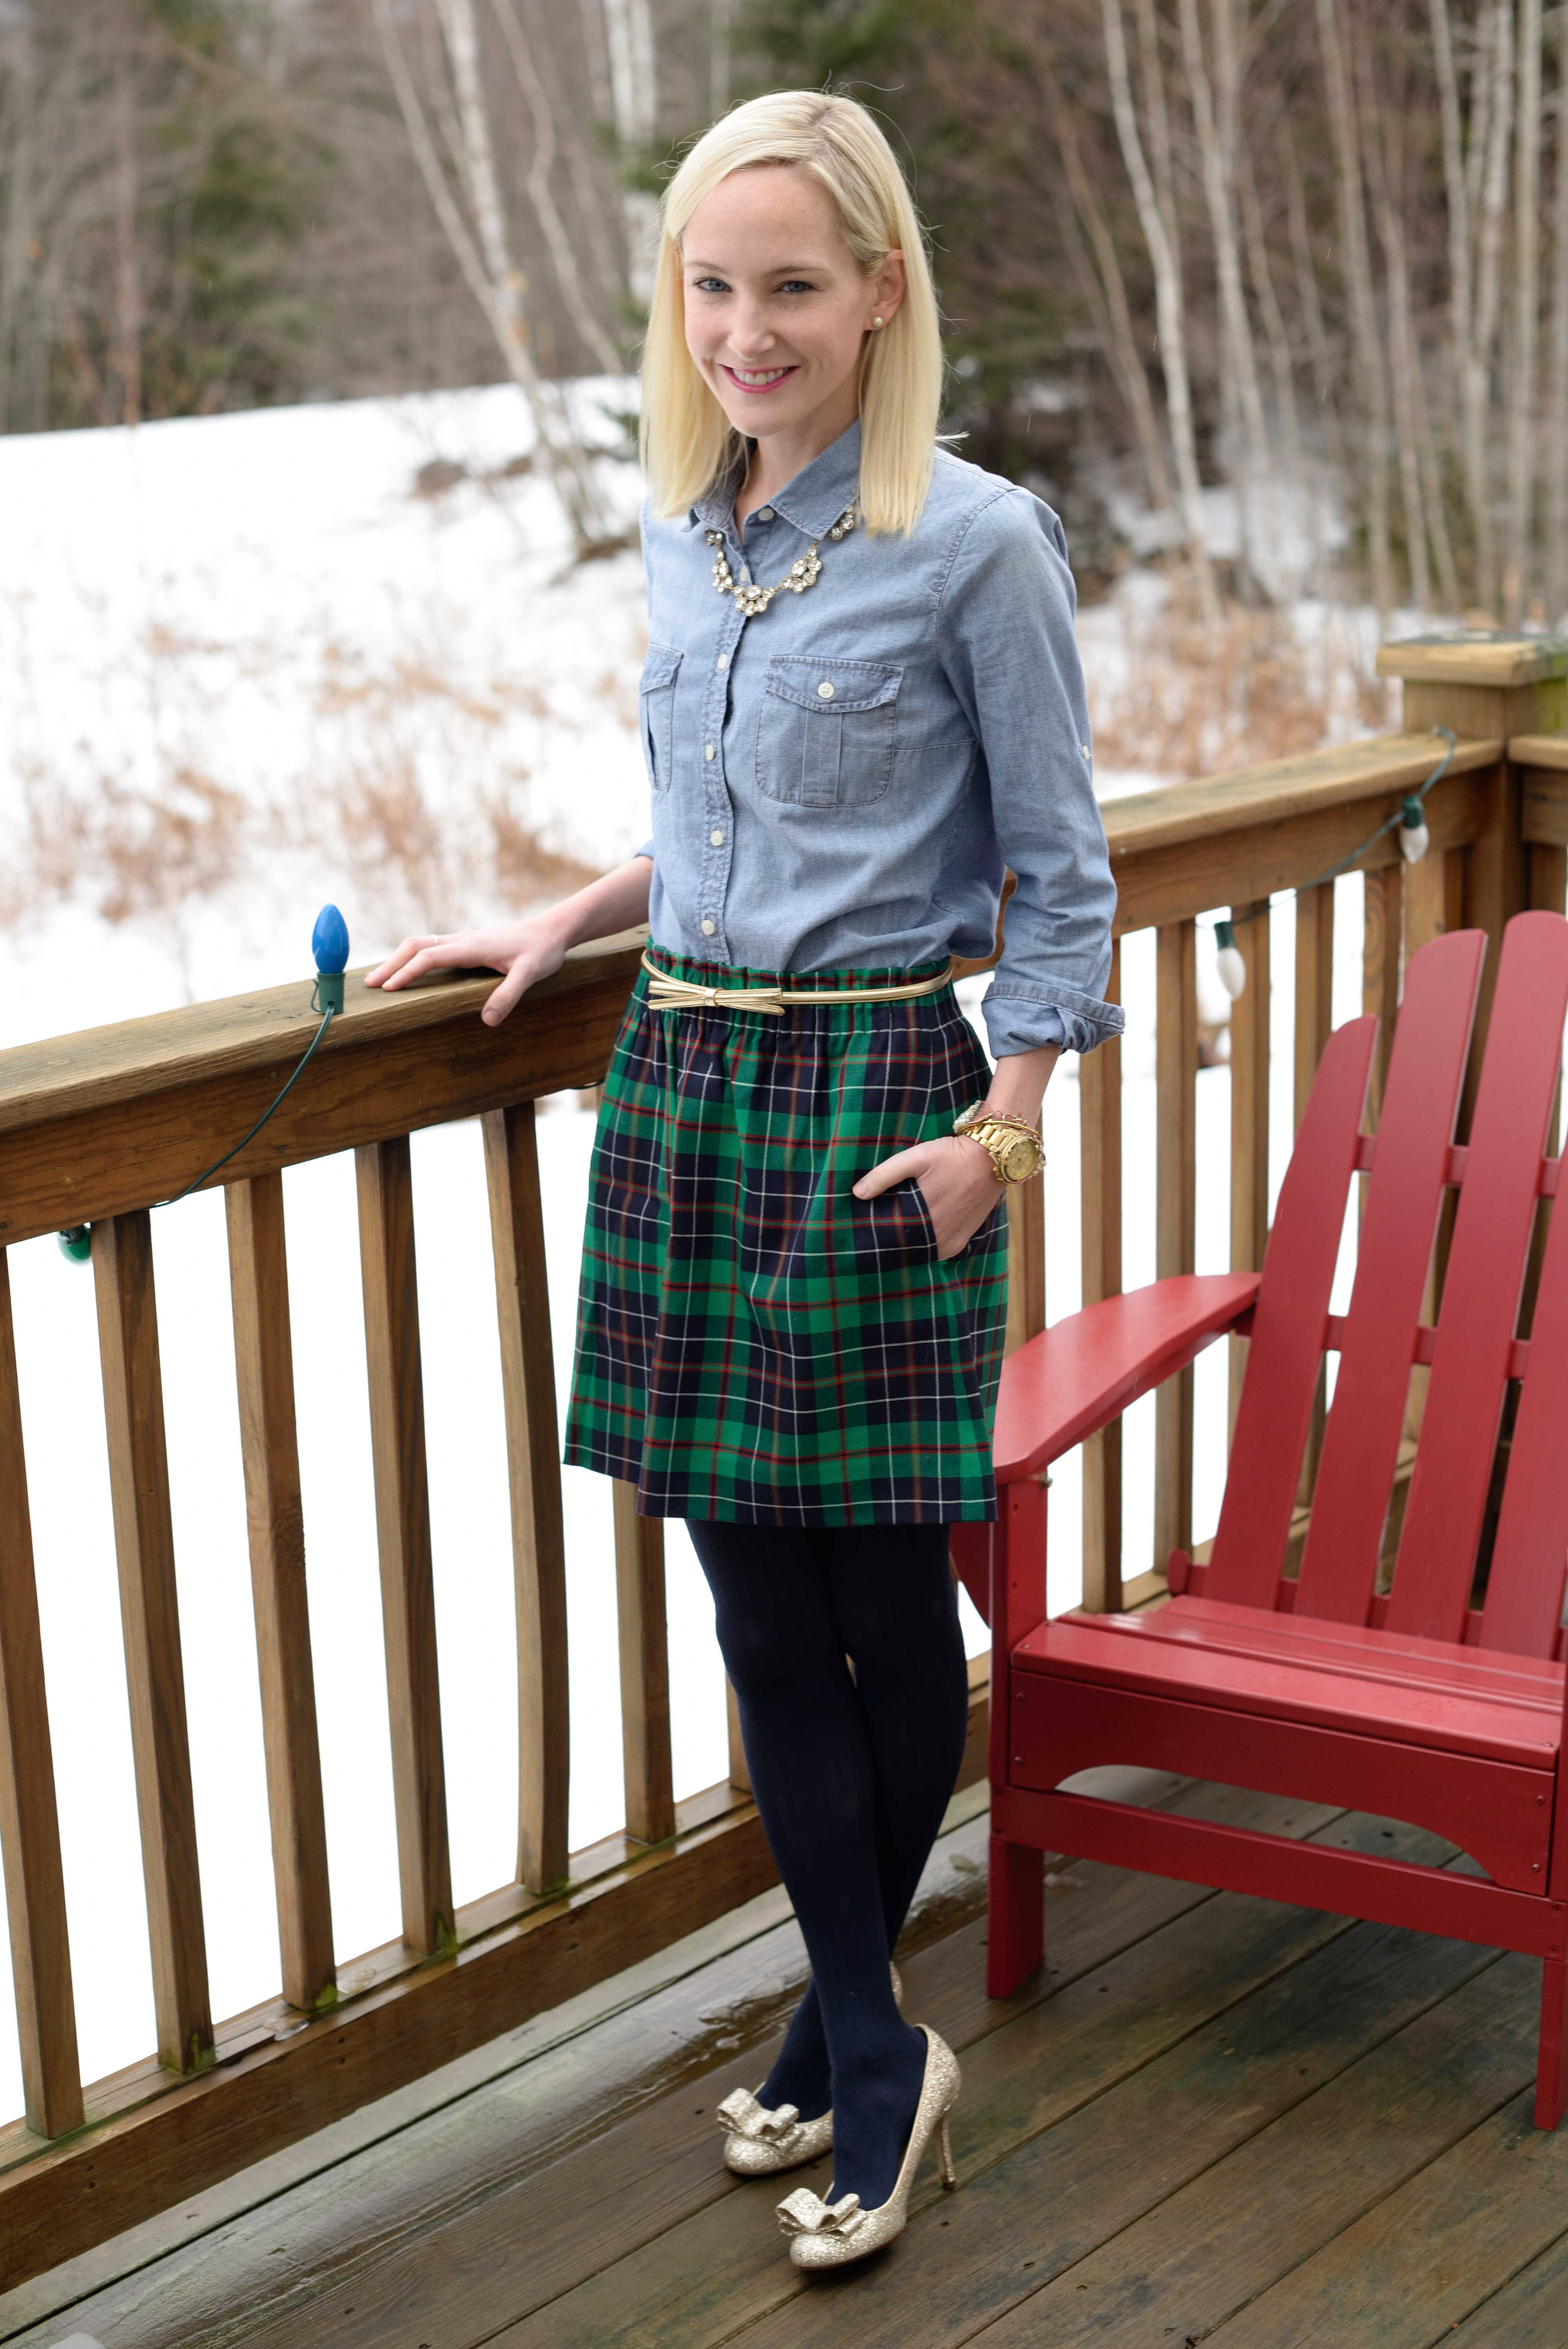 Christmas In Vermont Plaid Skirts Chambray Tops And Glittery Pumps Kelly In The City